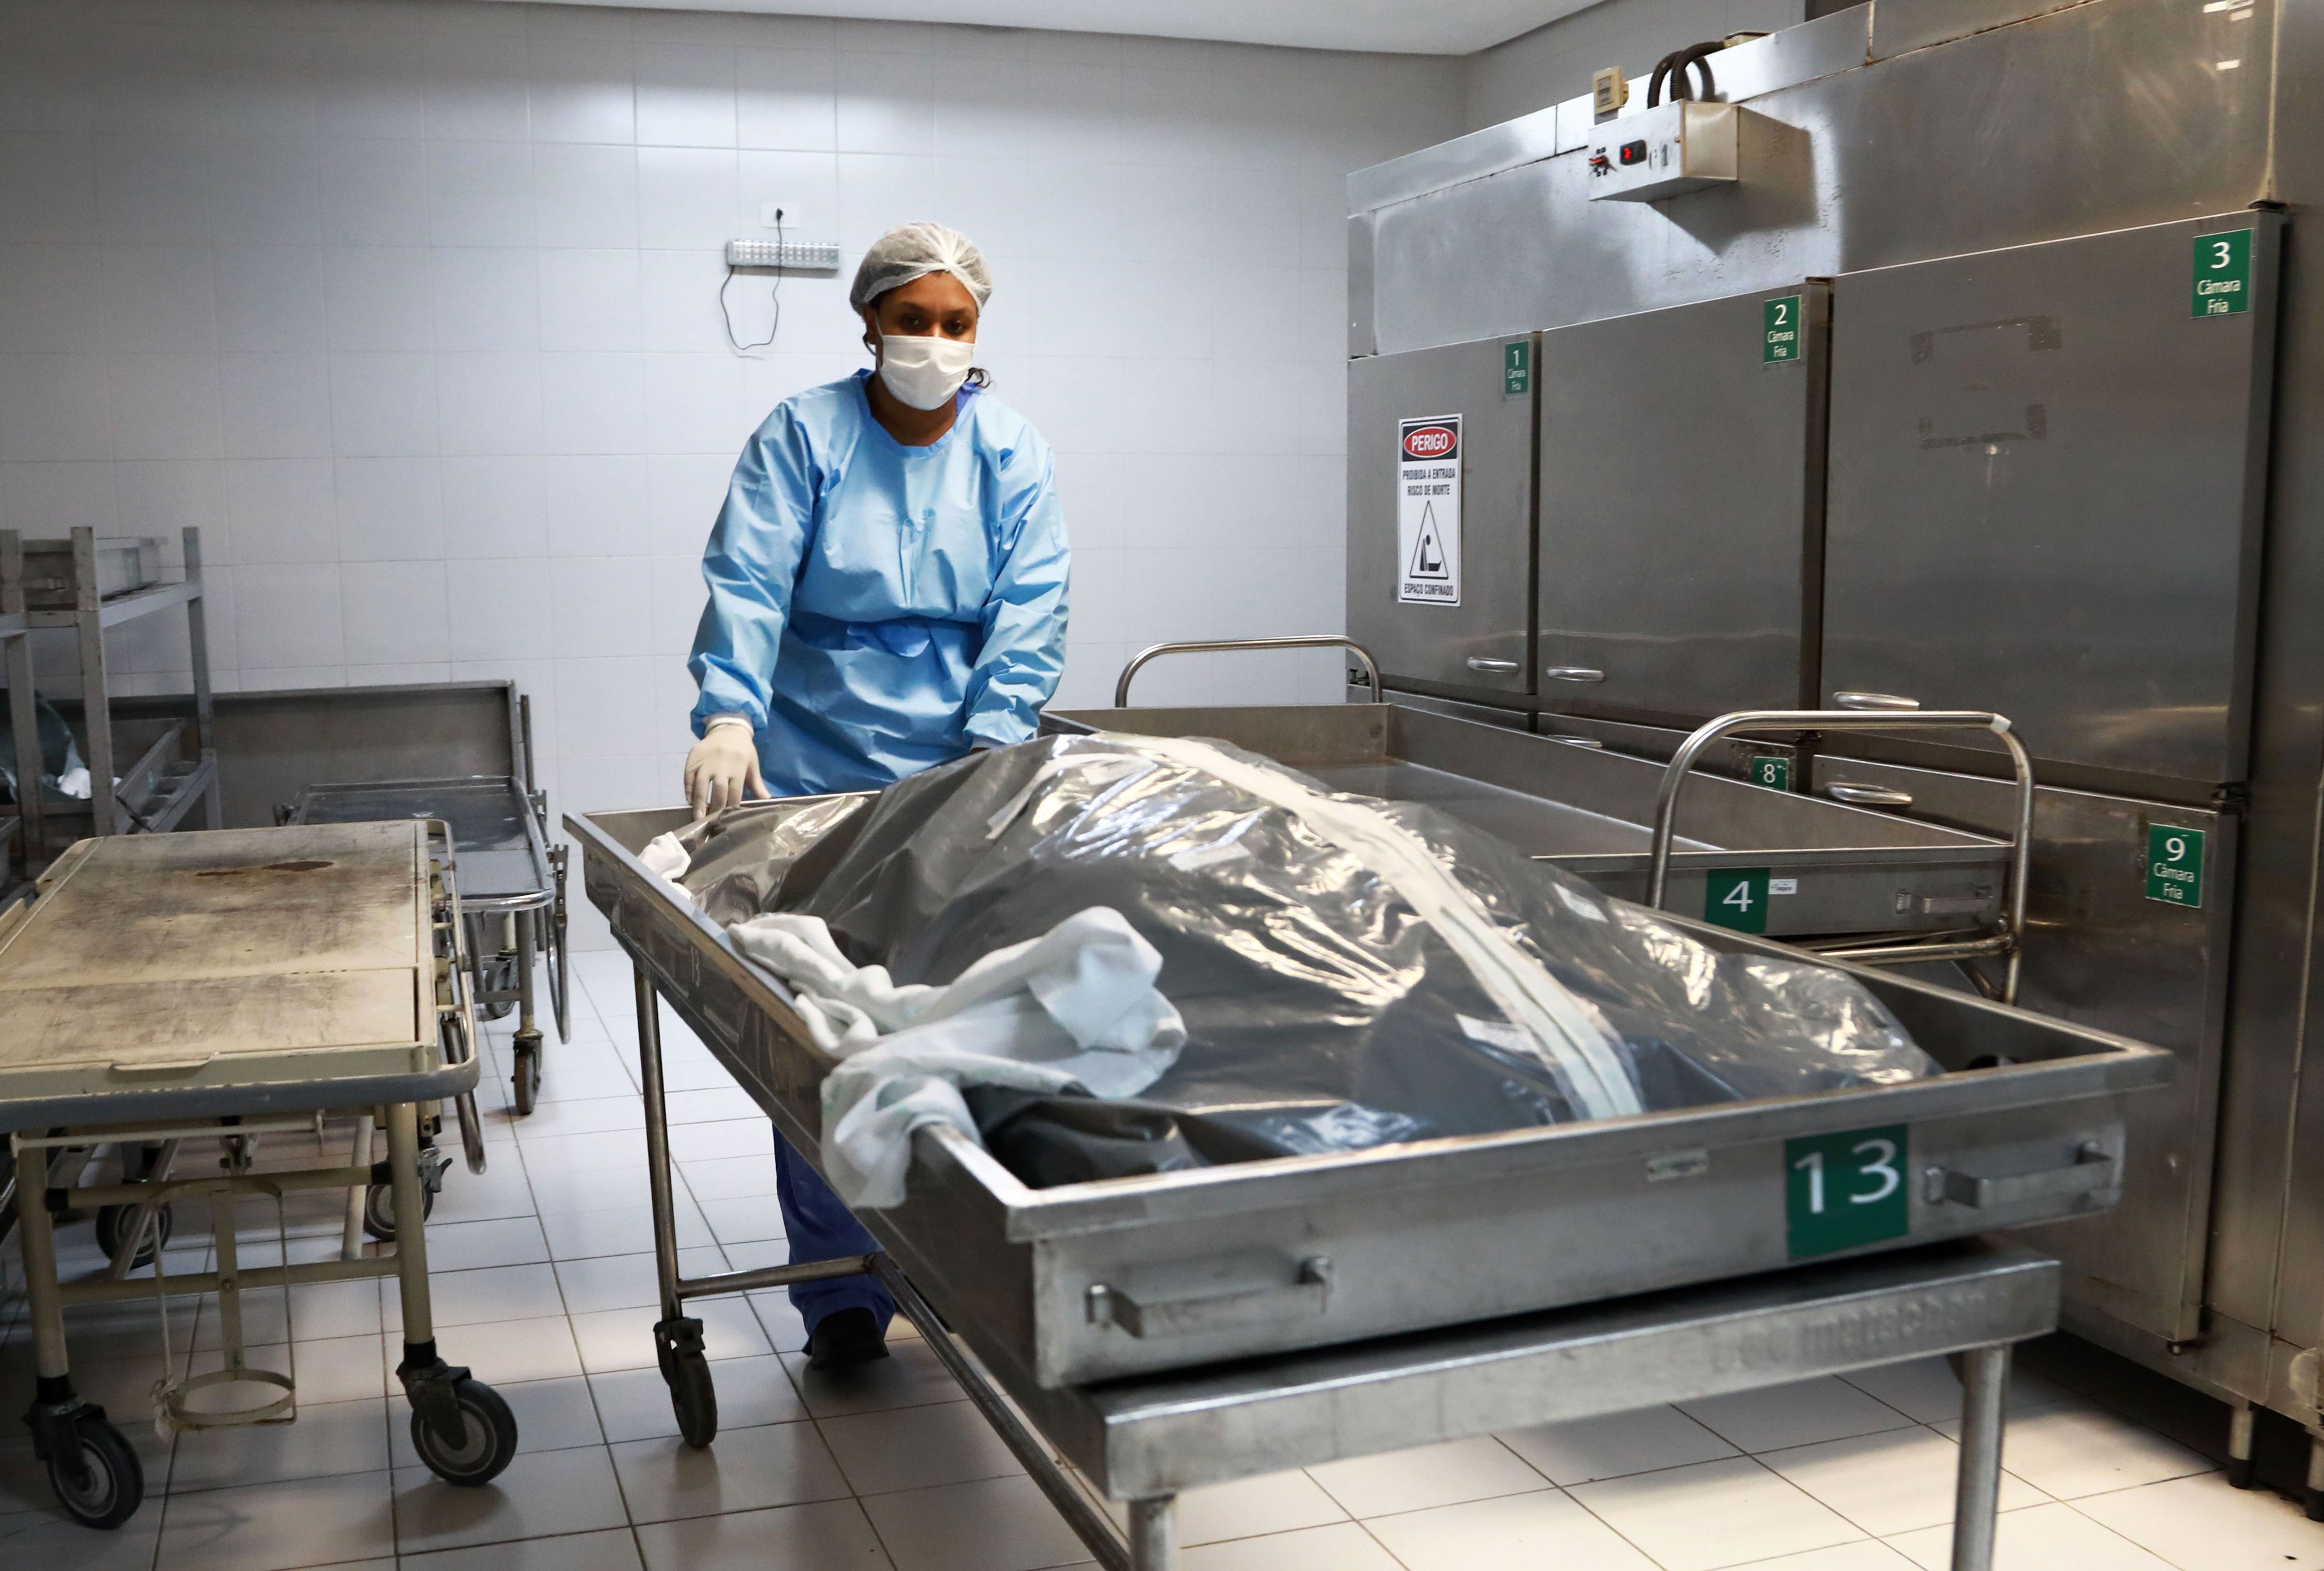 A morgue employee works with the body of a Covid-19 victim at a hospital in Porto Alegre, Brazil, on March 4.